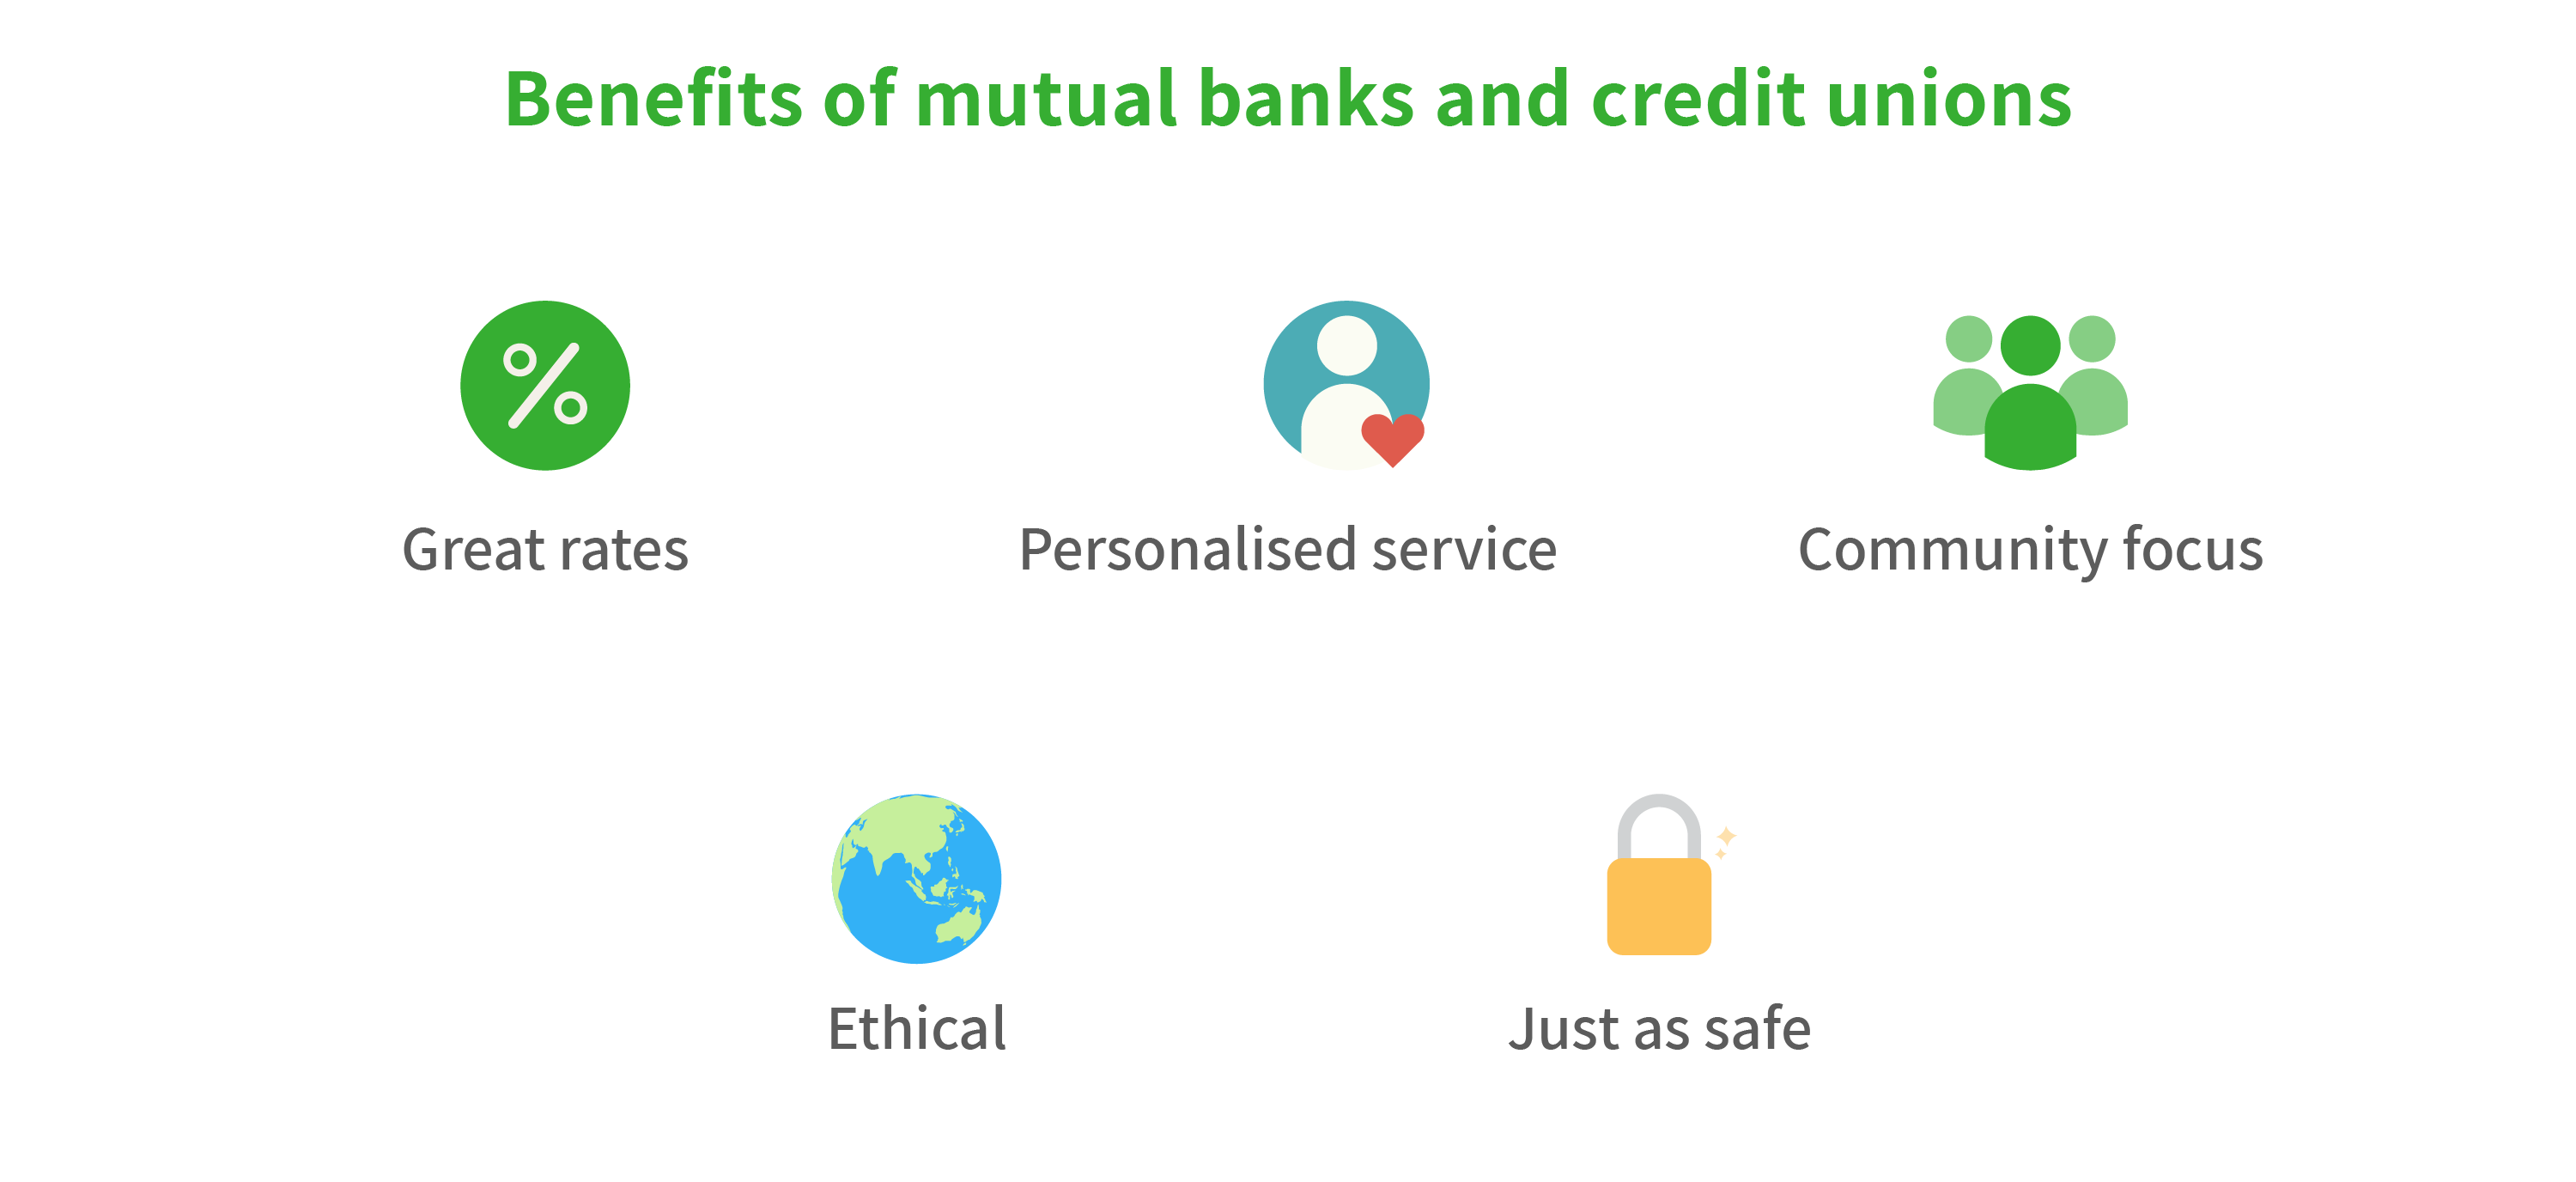 Benefits of mutual banks and credit unions